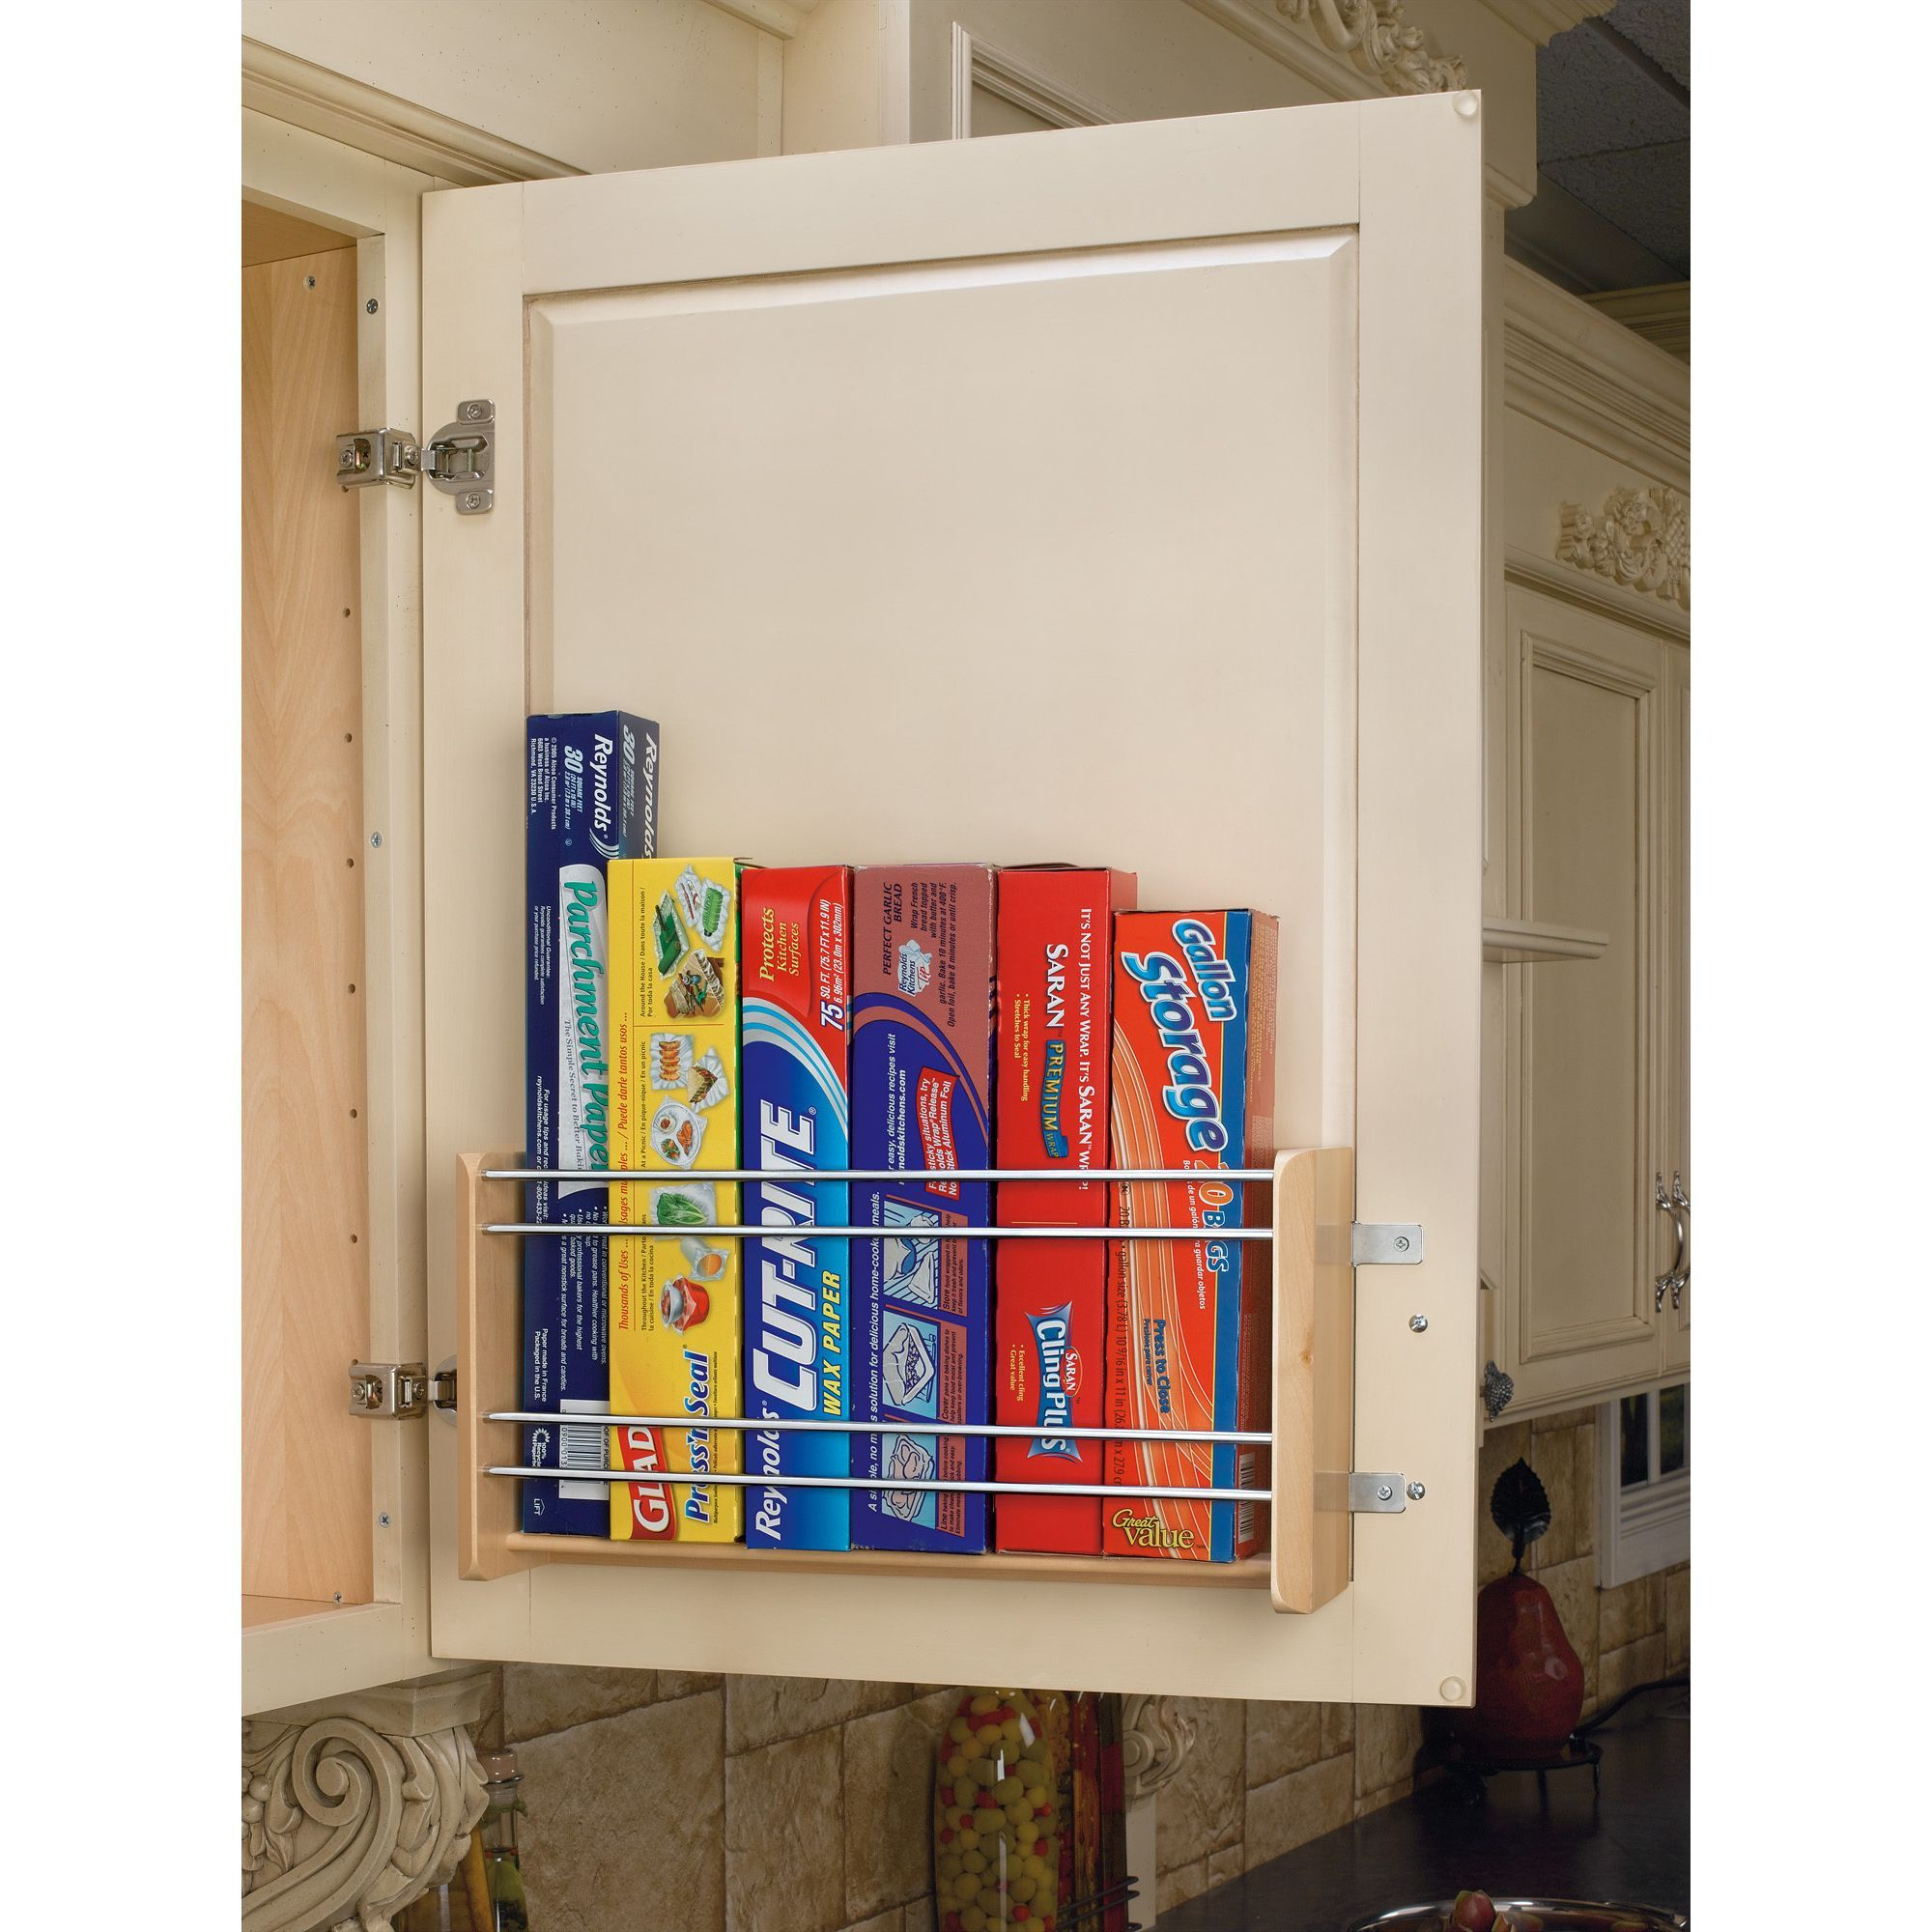 Designed For 15 Inch 18 Inch And 21 Inch Wall Cabinets This Beautiful Wood Organizer Brings You Small Kitchen Storage Diy Kitchen Storage Kitchen Organization